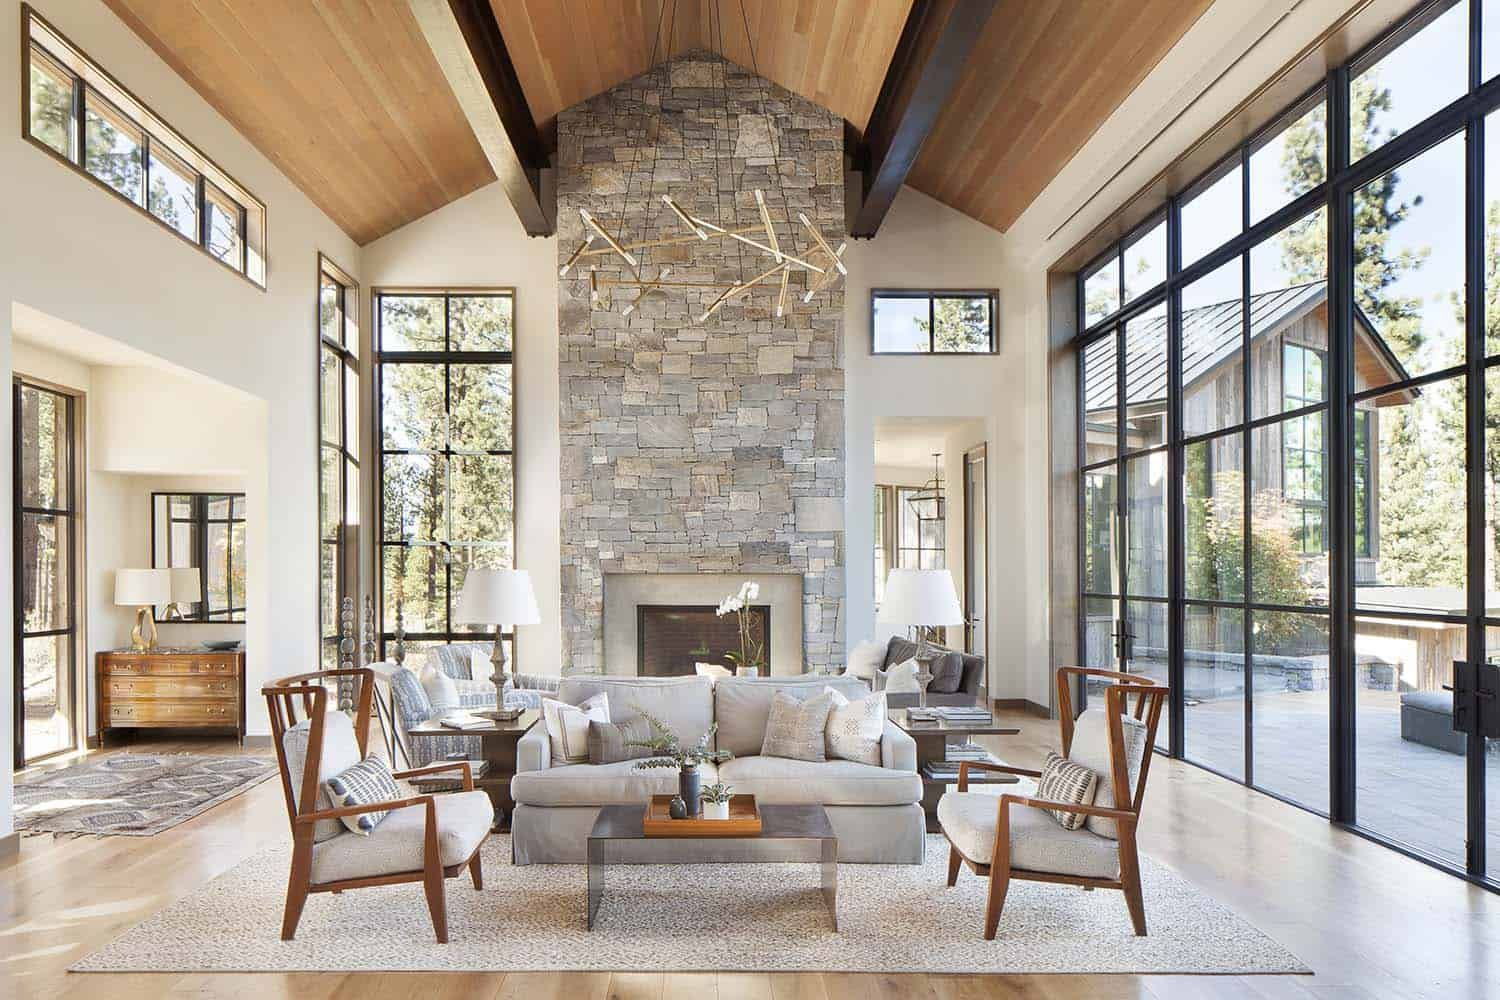 Stunning mountain home in Lake Tahoe evokes contemporary barn feeling